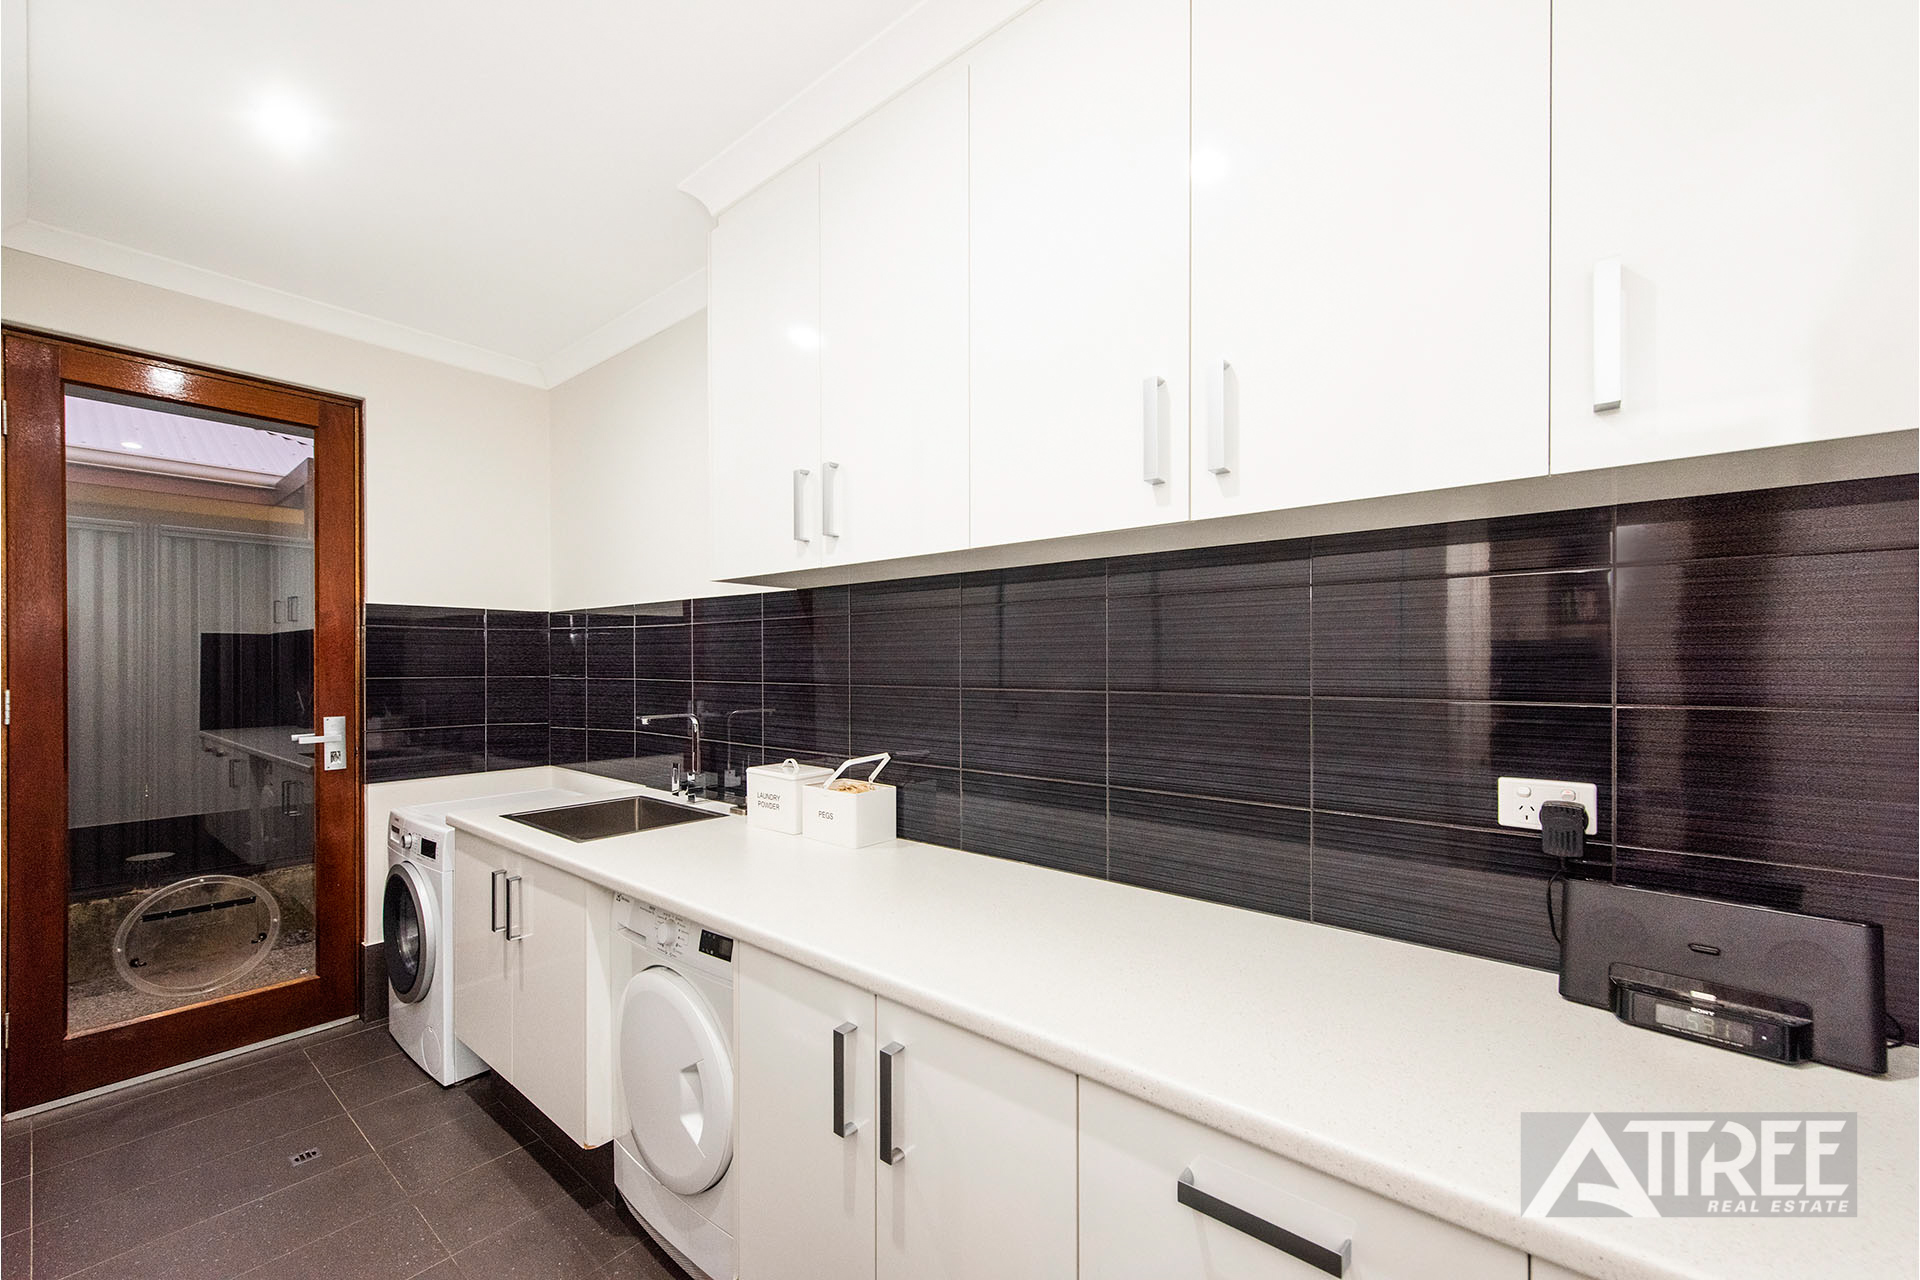 Property for sale in HARRISDALE, 3 Casula Place : Attree Real Estate